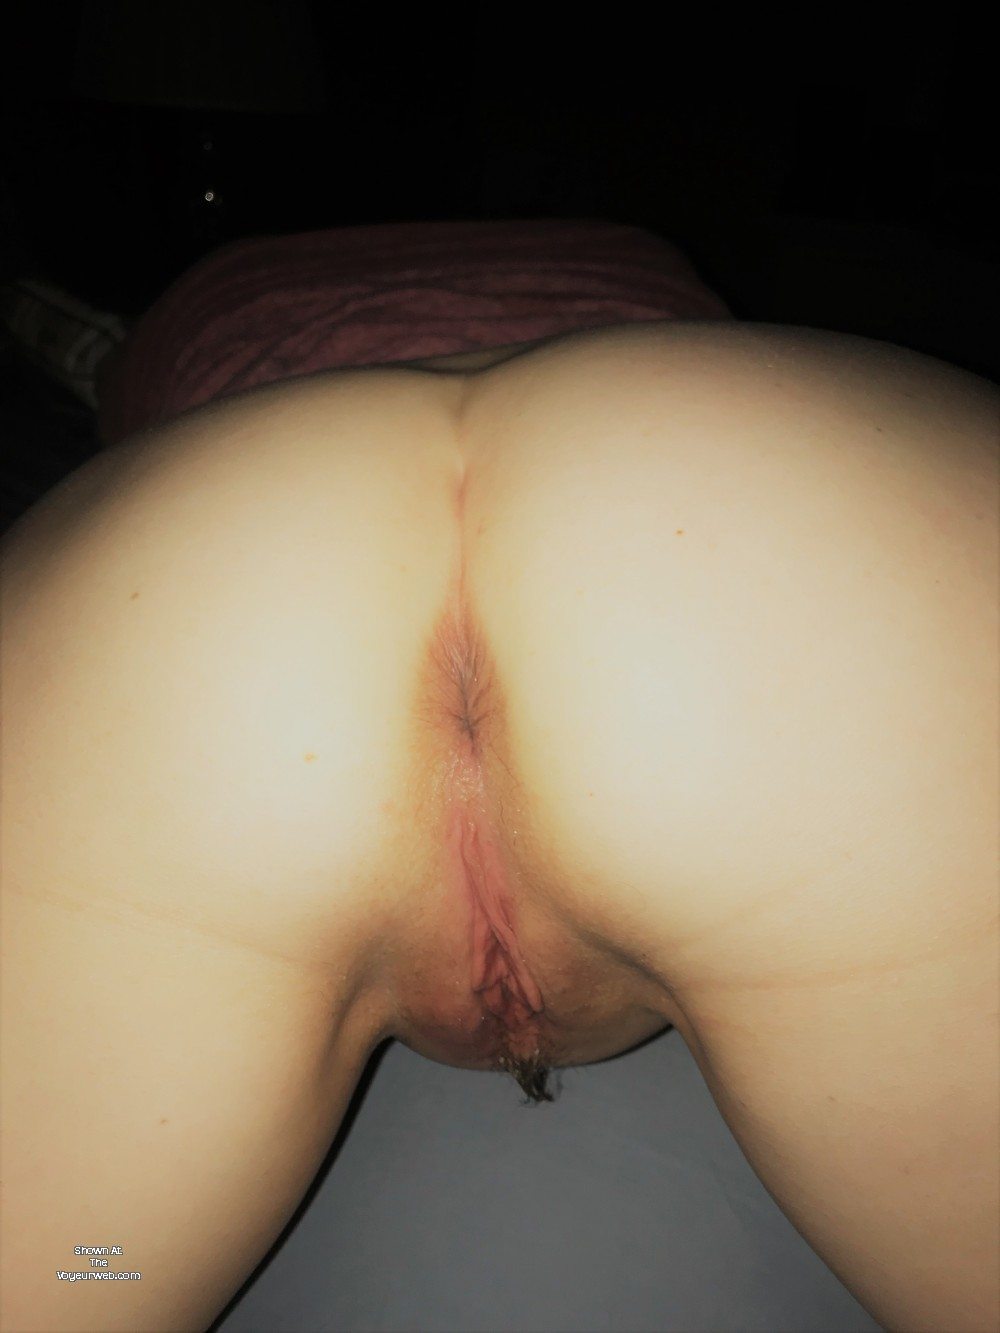 Pic #1My wife's ass - Wife...........................